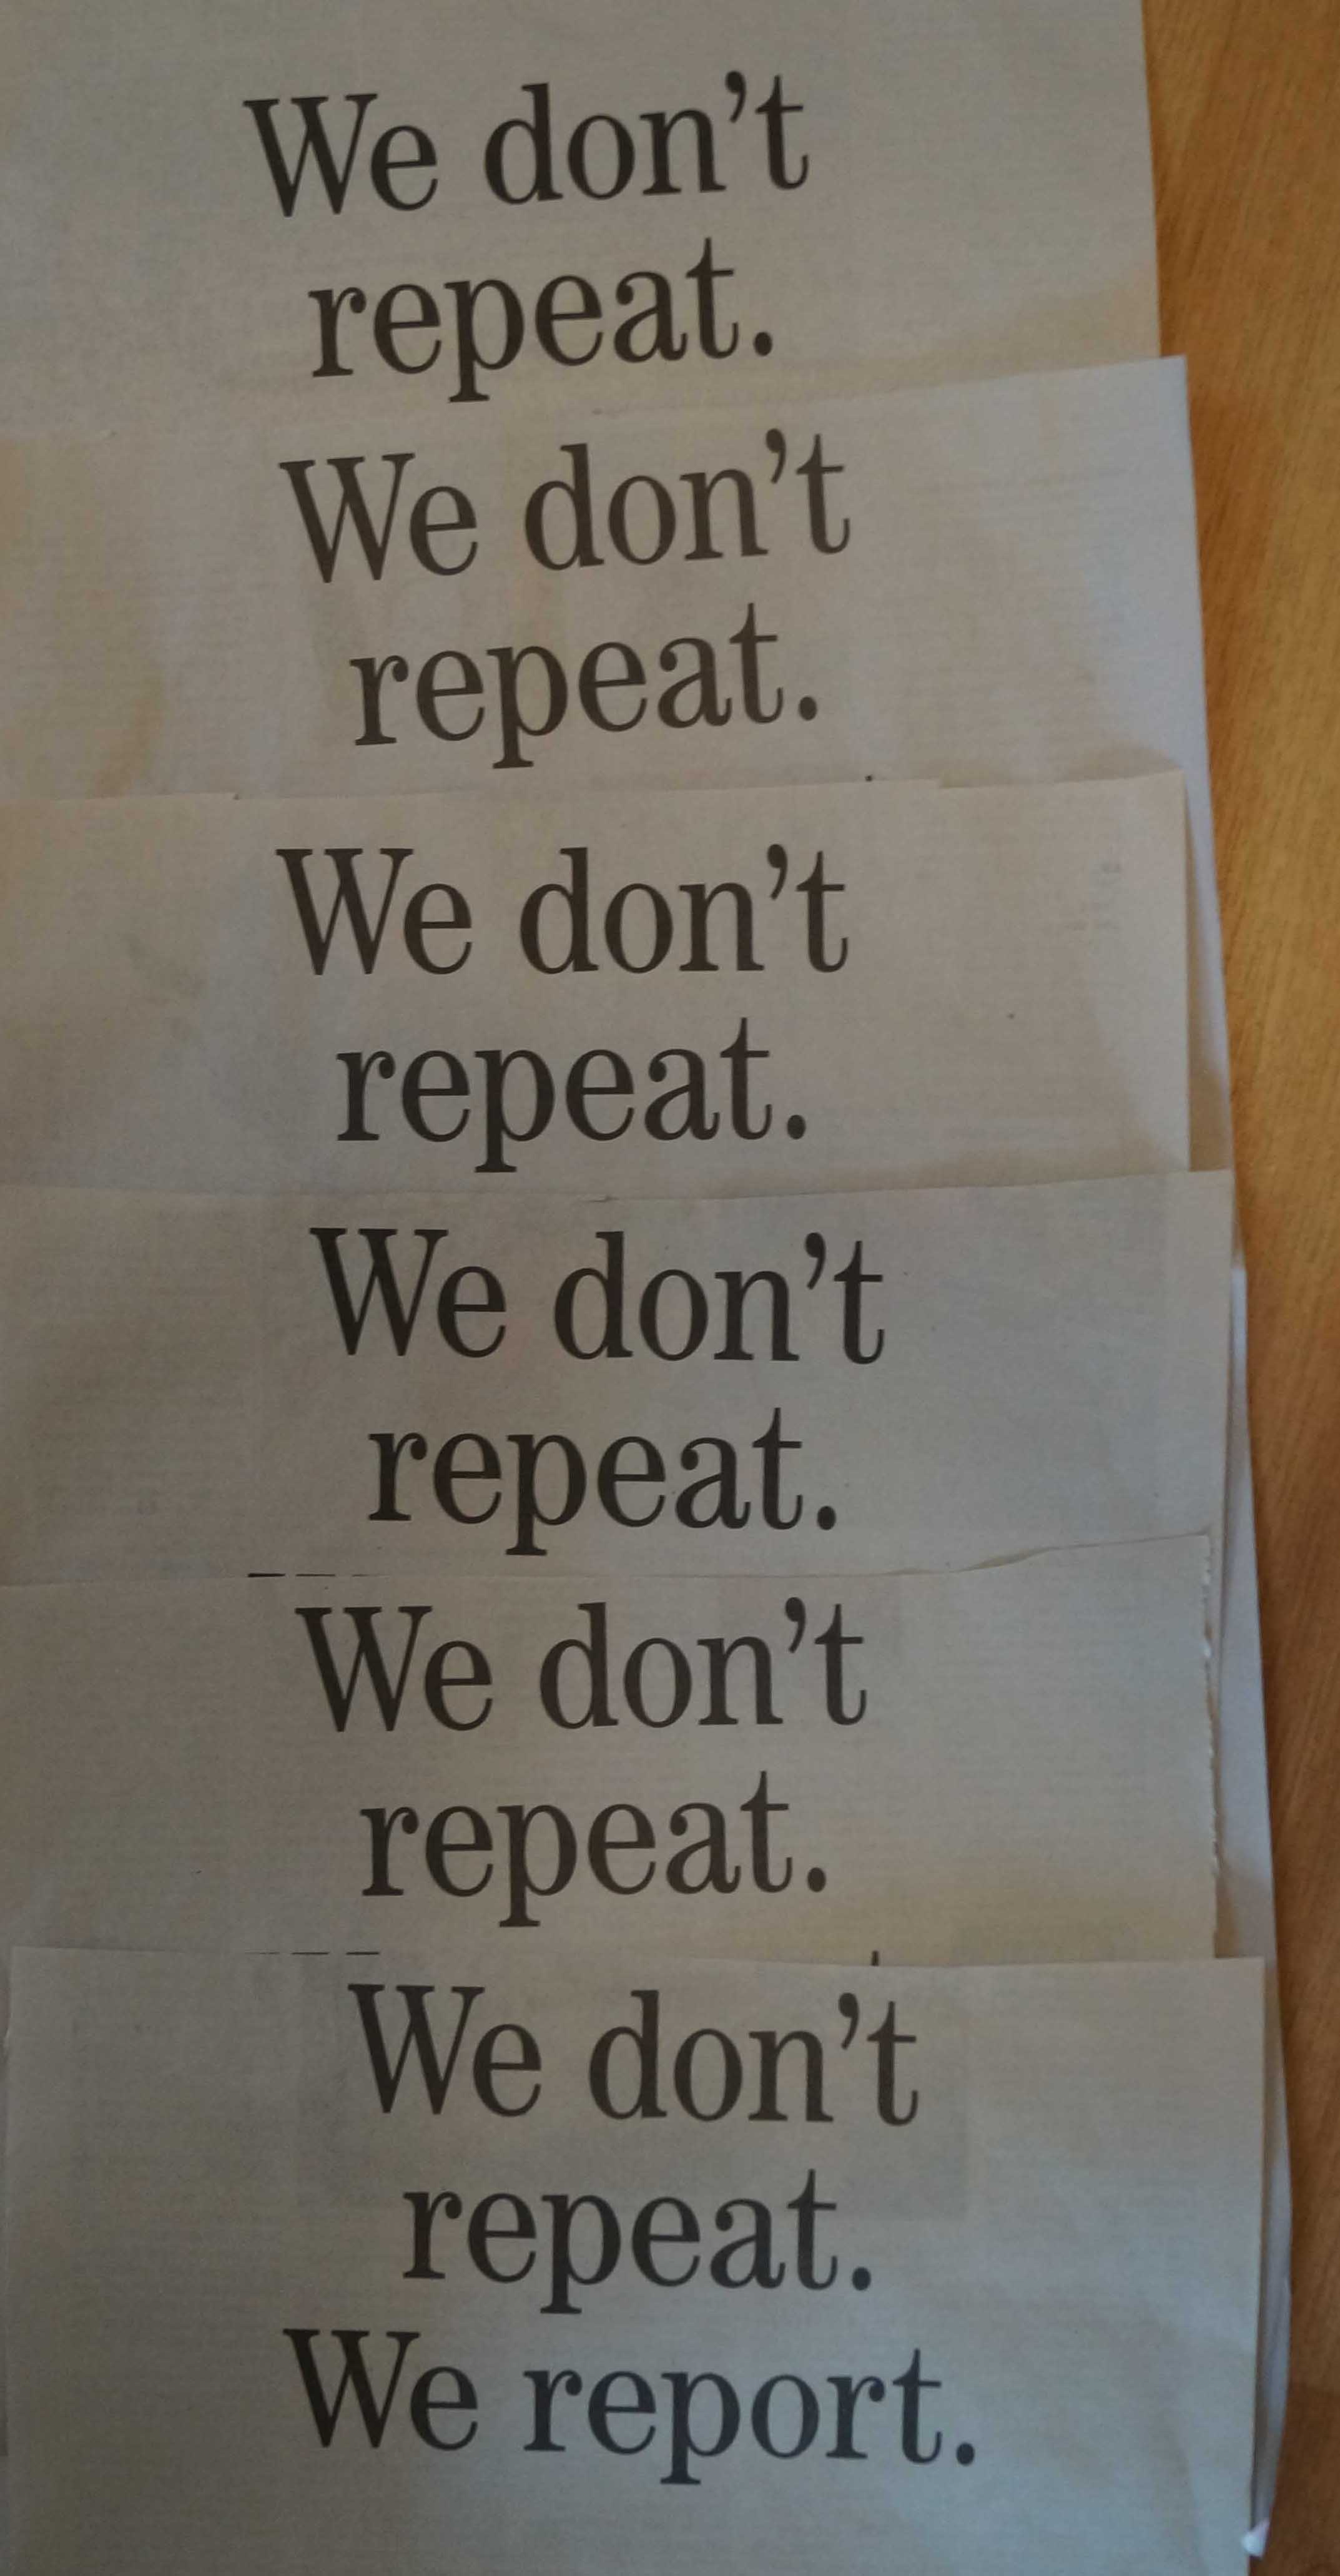 Toronto Star: We don't repeat